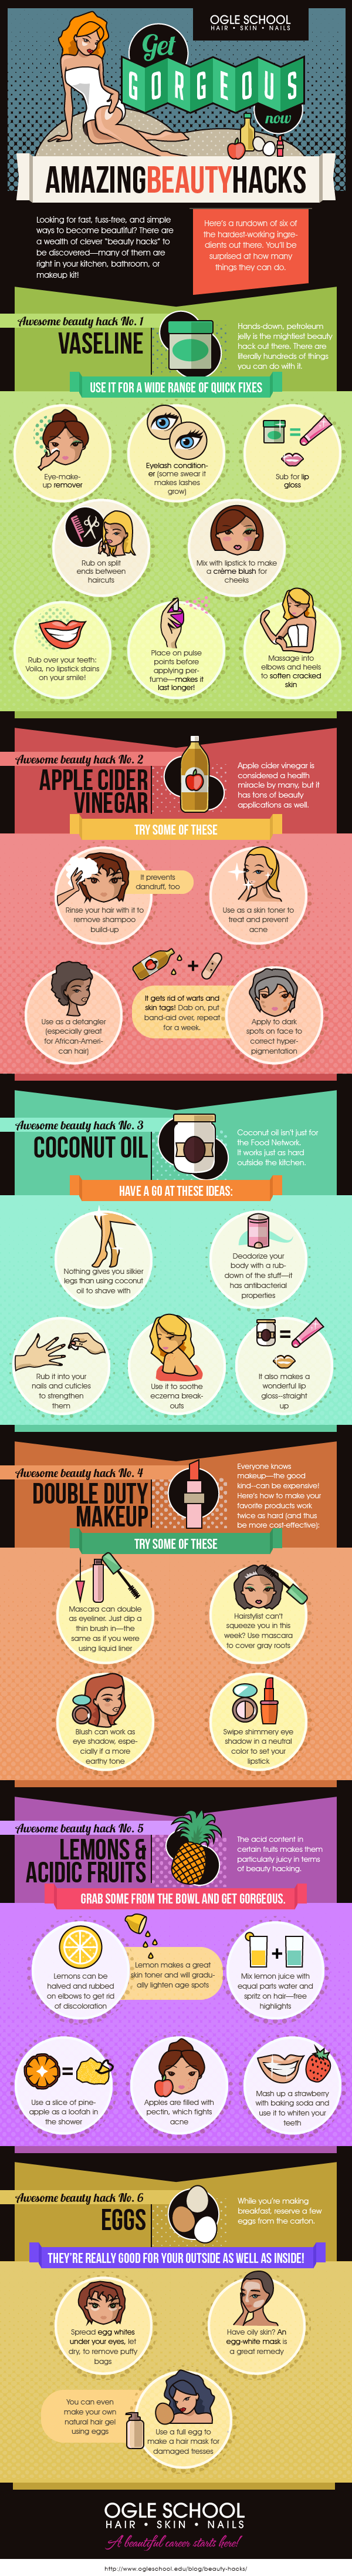 Beauty Hacks IG final1 Get Summer Gorgeous Now | Infographic